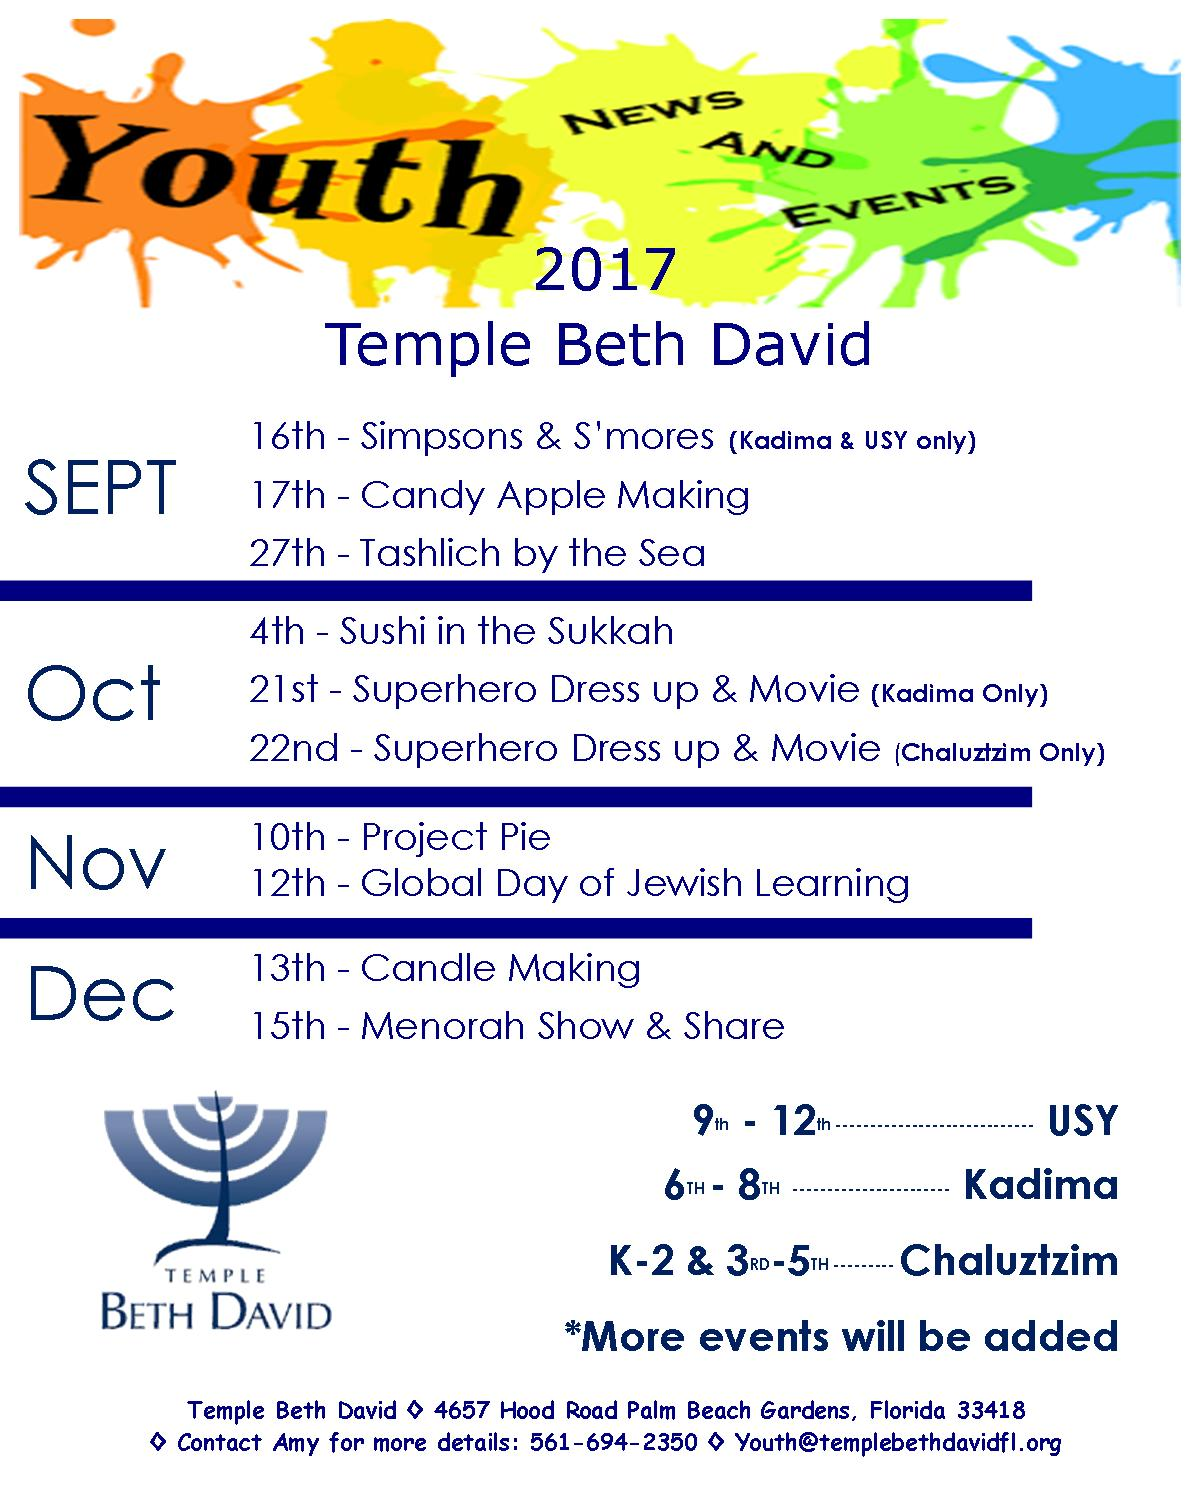 Youth Events Flyer 2017 - updated        10.25.2017